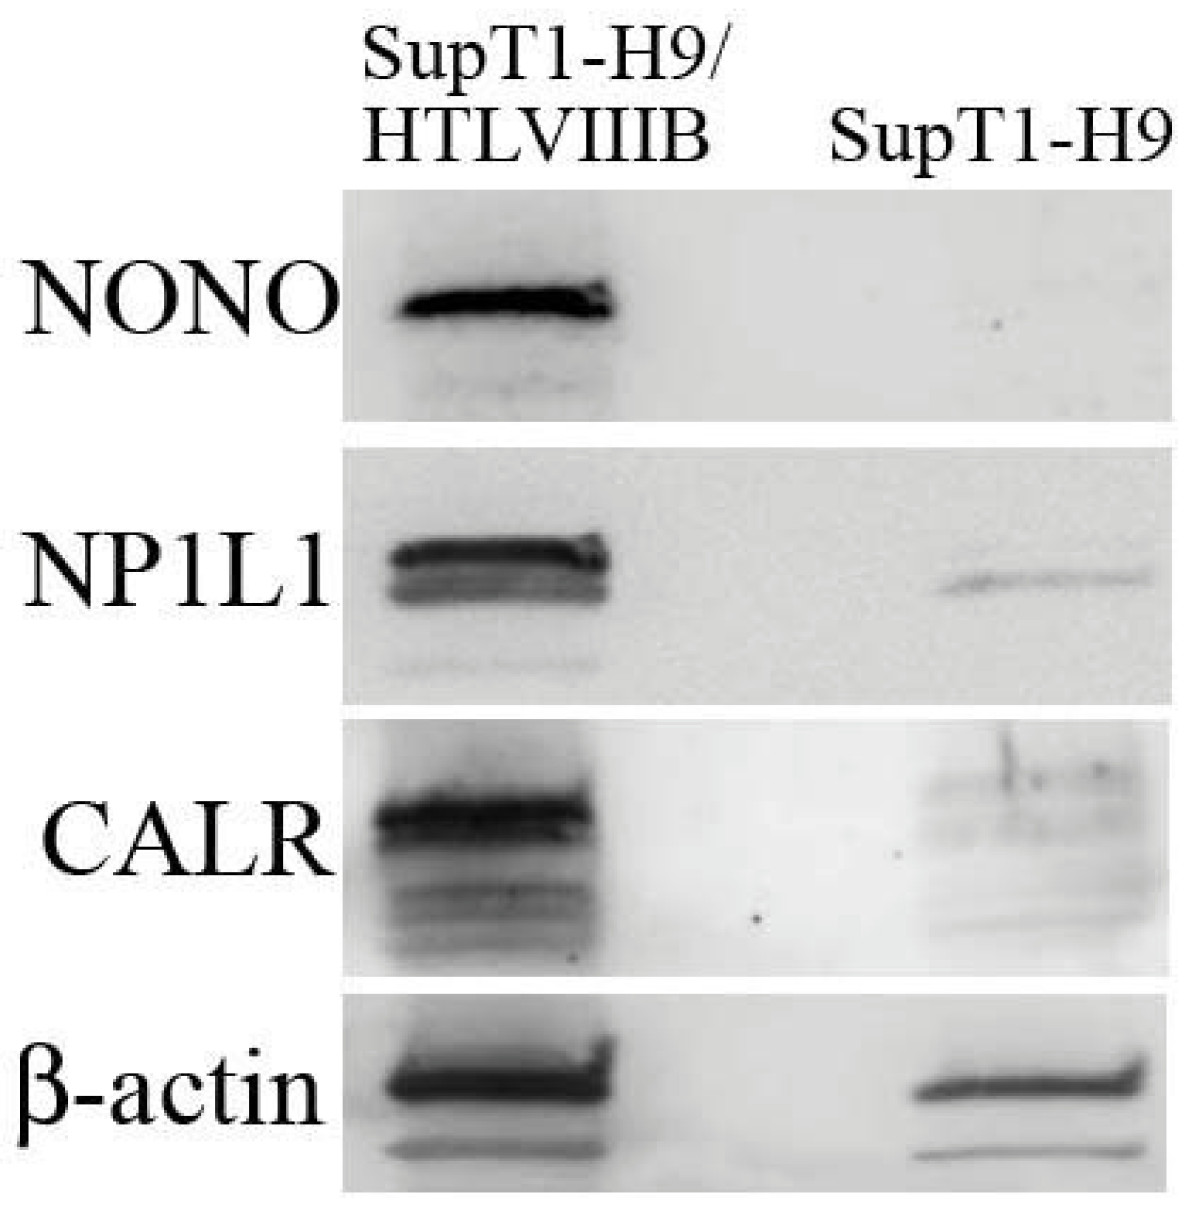 https://static-content.springer.com/image/art%3A10.1186%2F1742-4690-7-66/MediaObjects/12977_2010_Article_1869_Fig4_HTML.jpg